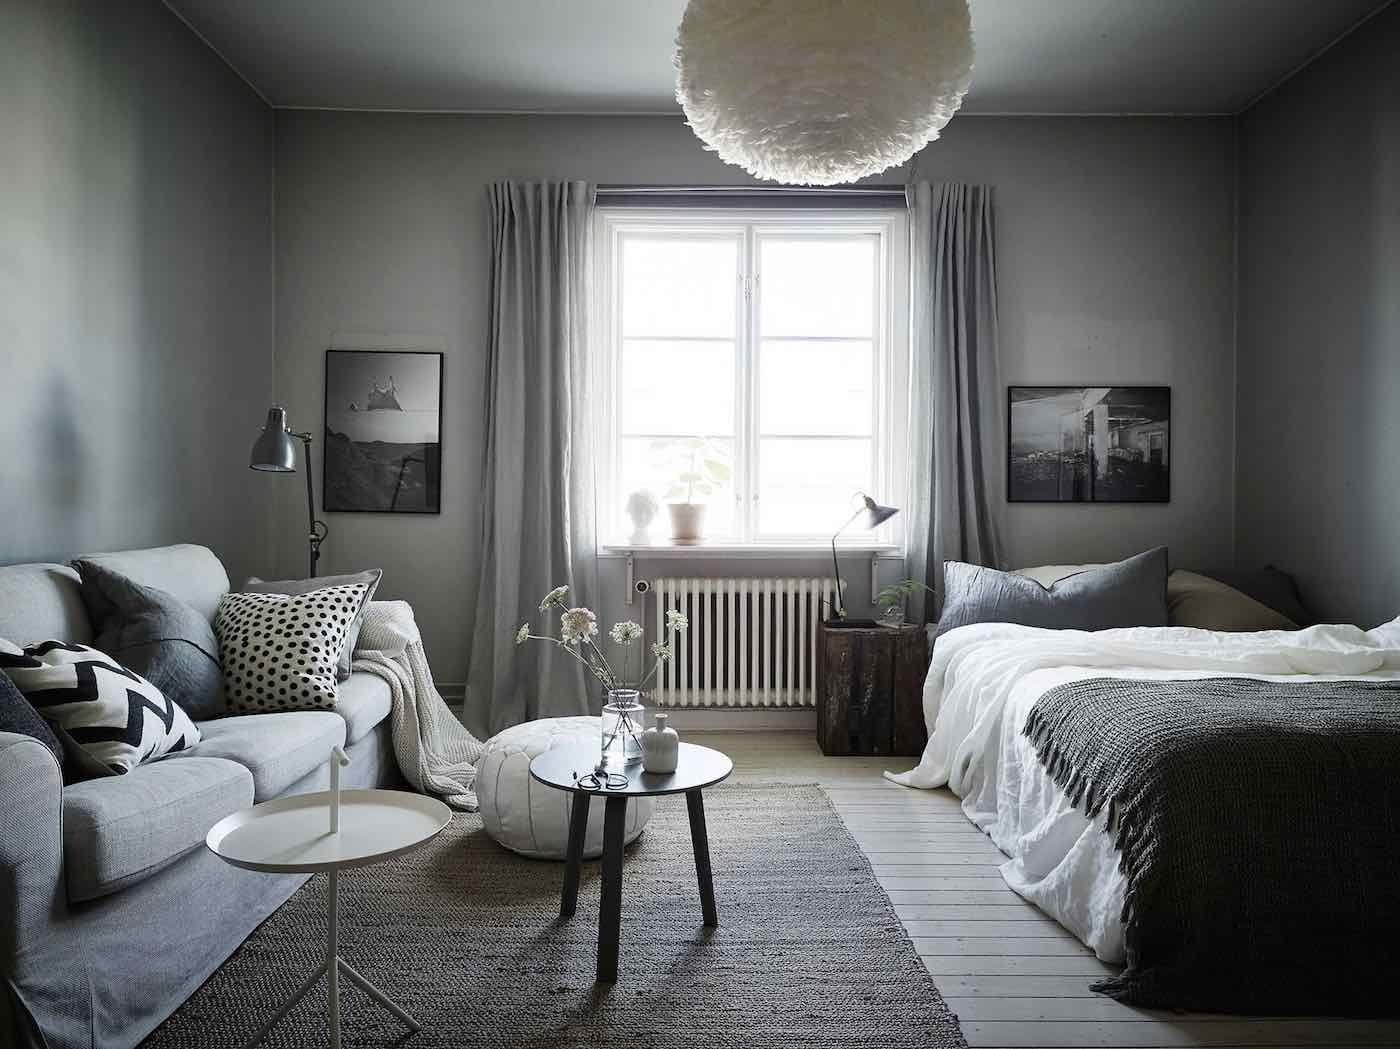 Interiores de un apartamento muy peque o en gris for Decoracion estudio pequeno